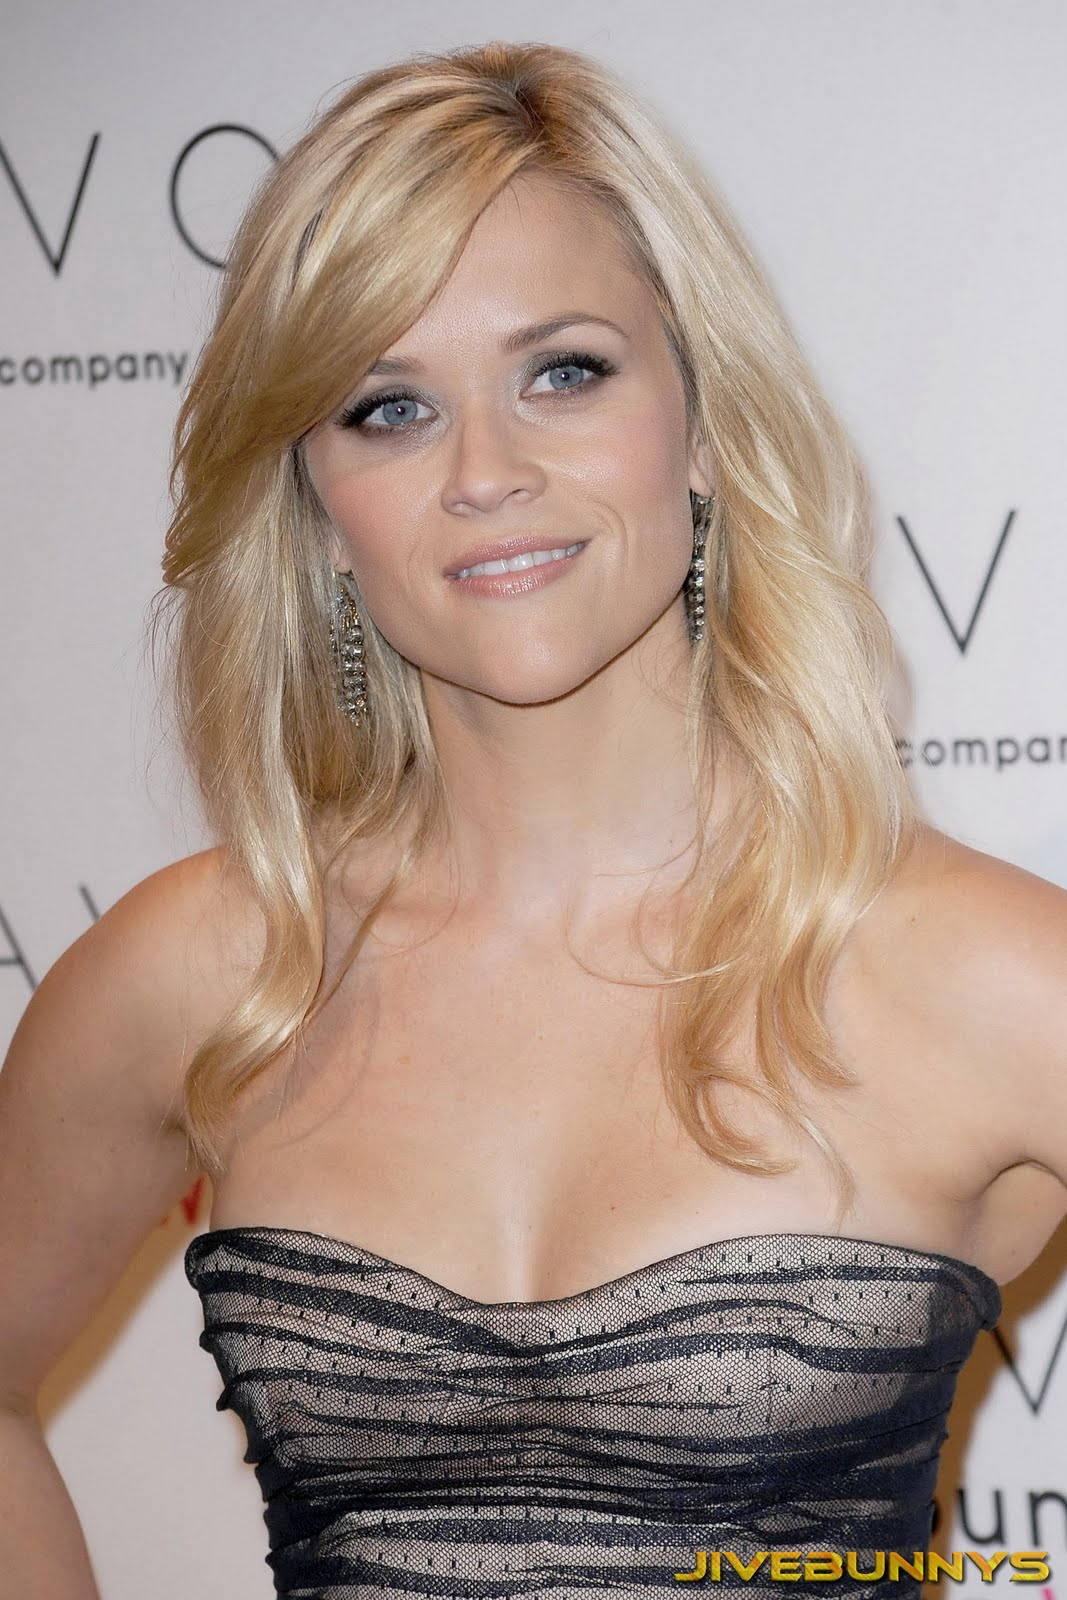 Reese Witherspoon Neuer Film